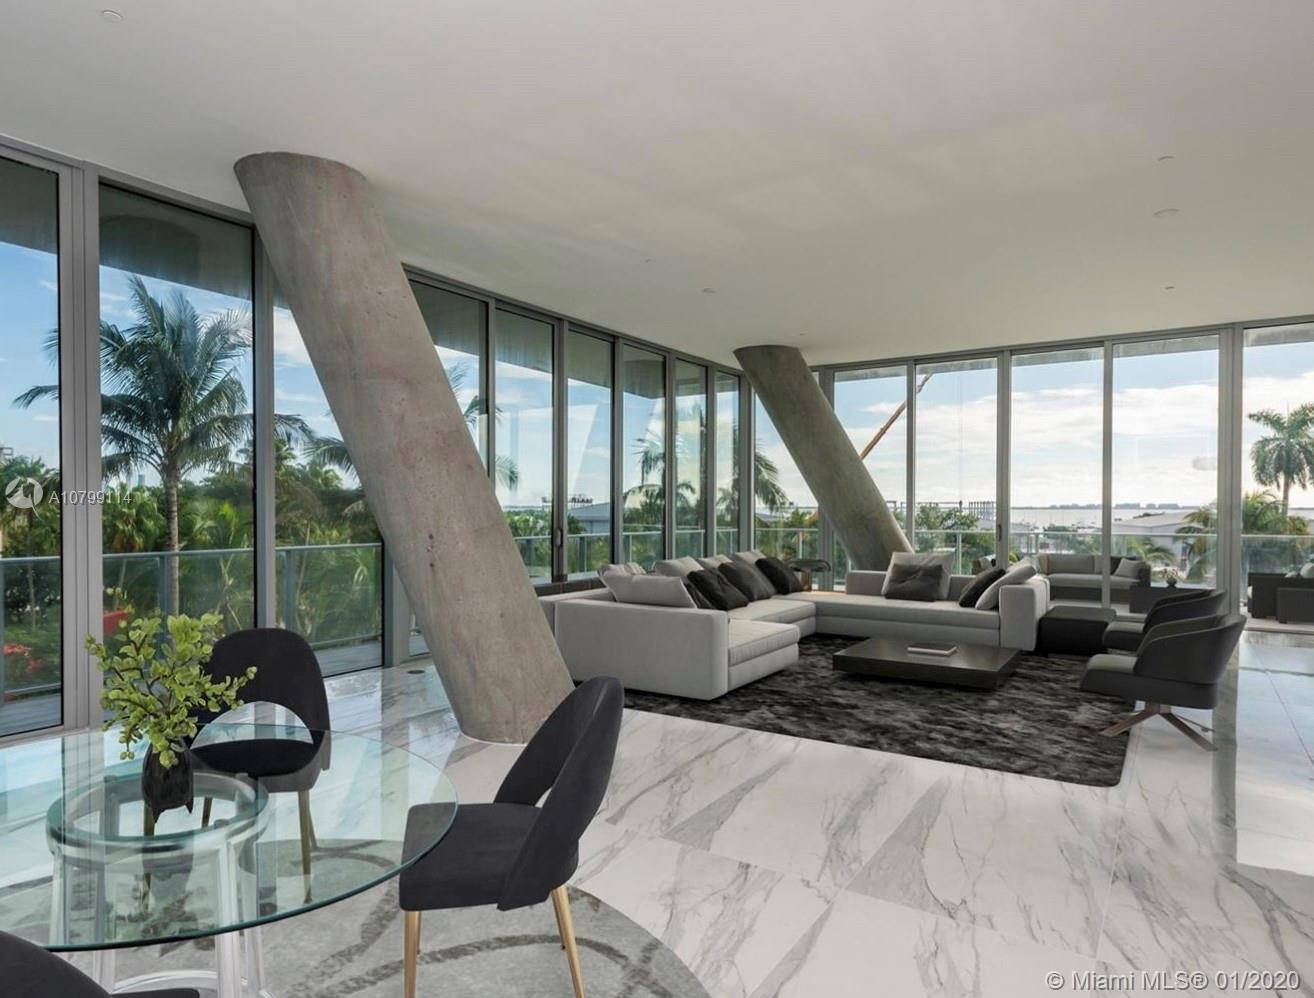 Grove at Grand Bay is designed by Byarke Ingels of BIG Architects. 5 bedrooms + maids room/6 1/2 bat